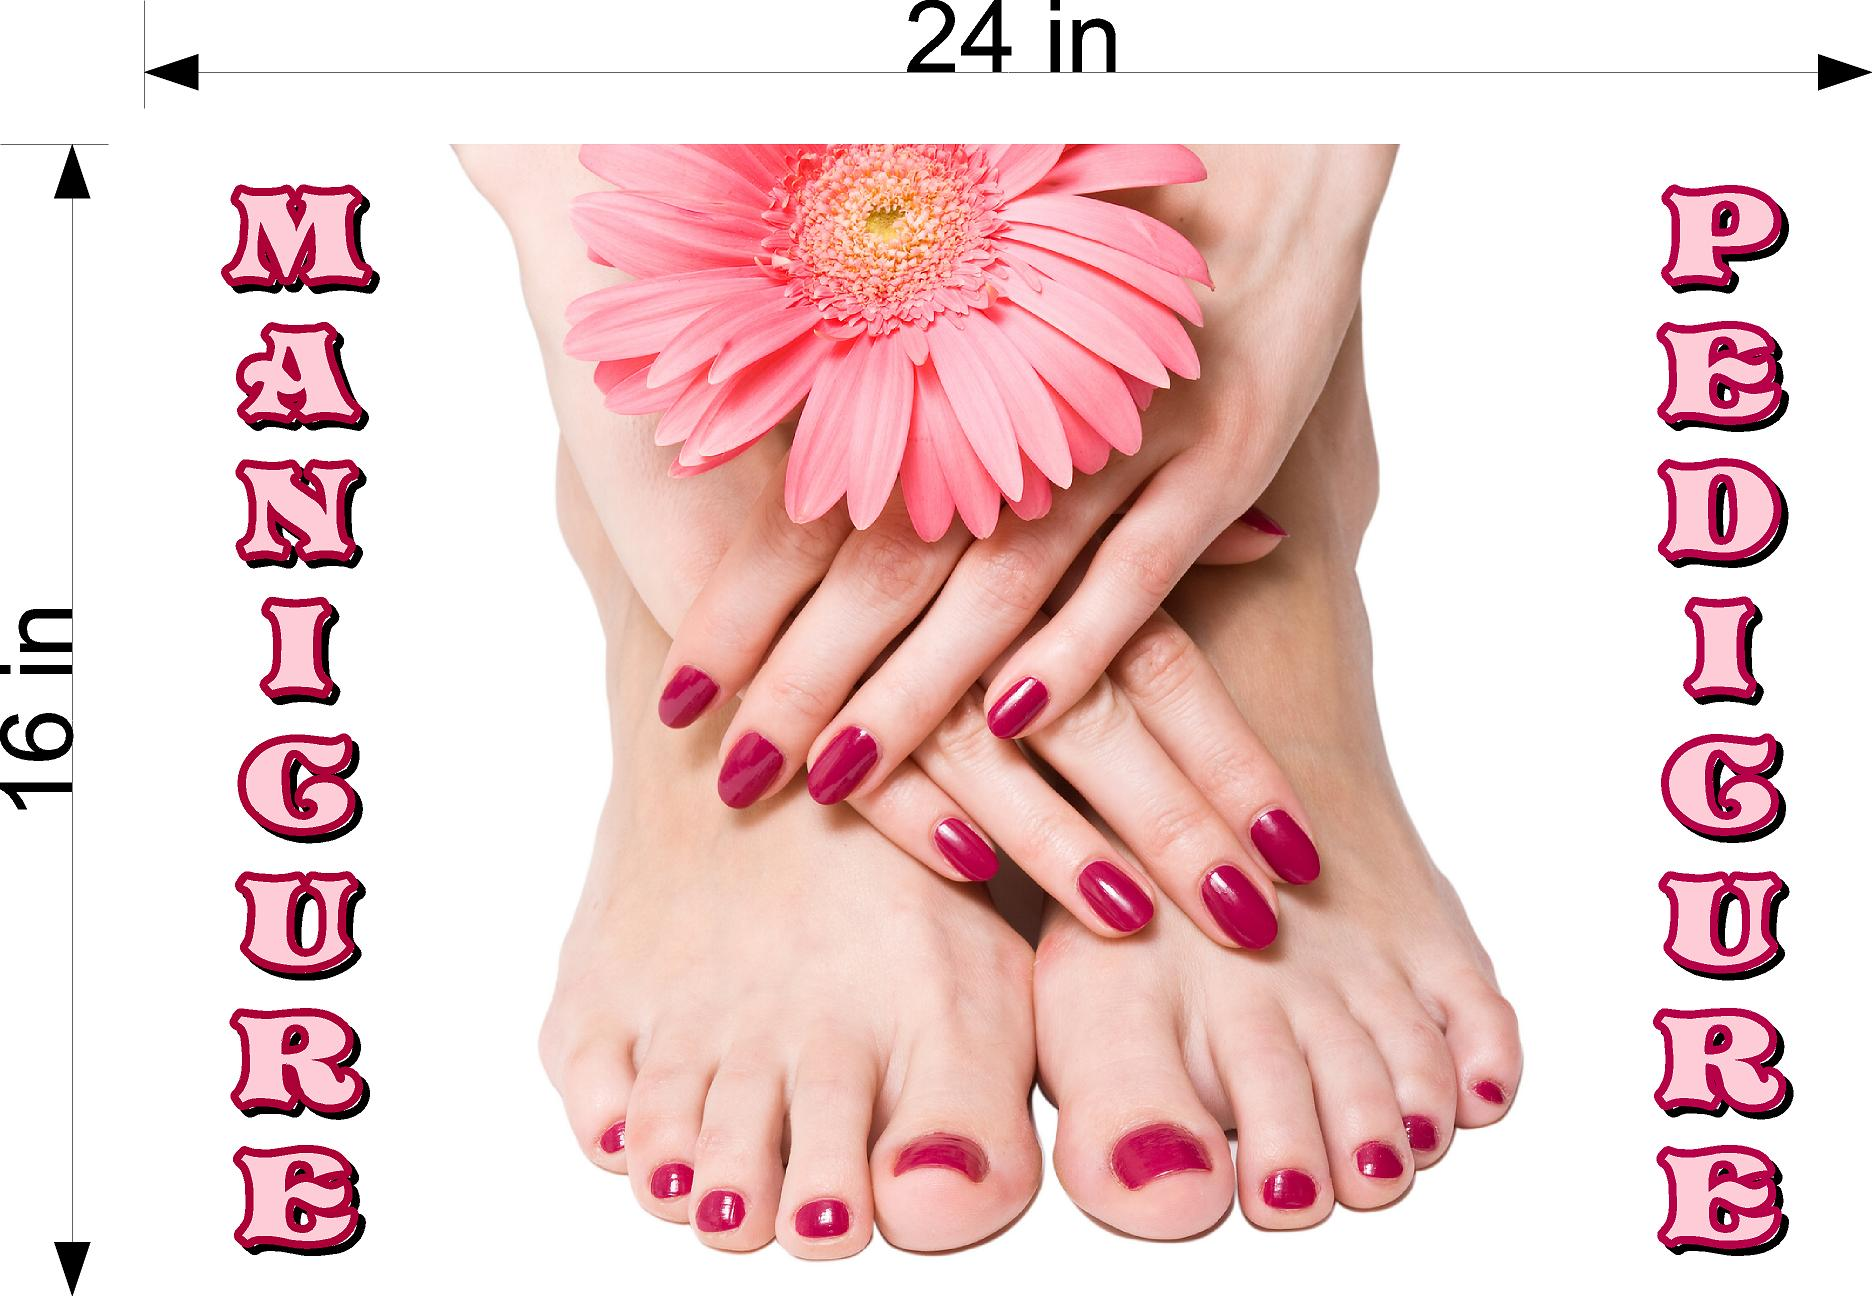 Pedicure & Manicure 12 Perforated Mesh One Way Vision See-Through Window Vinyl Nail Salon Sign Horizontal